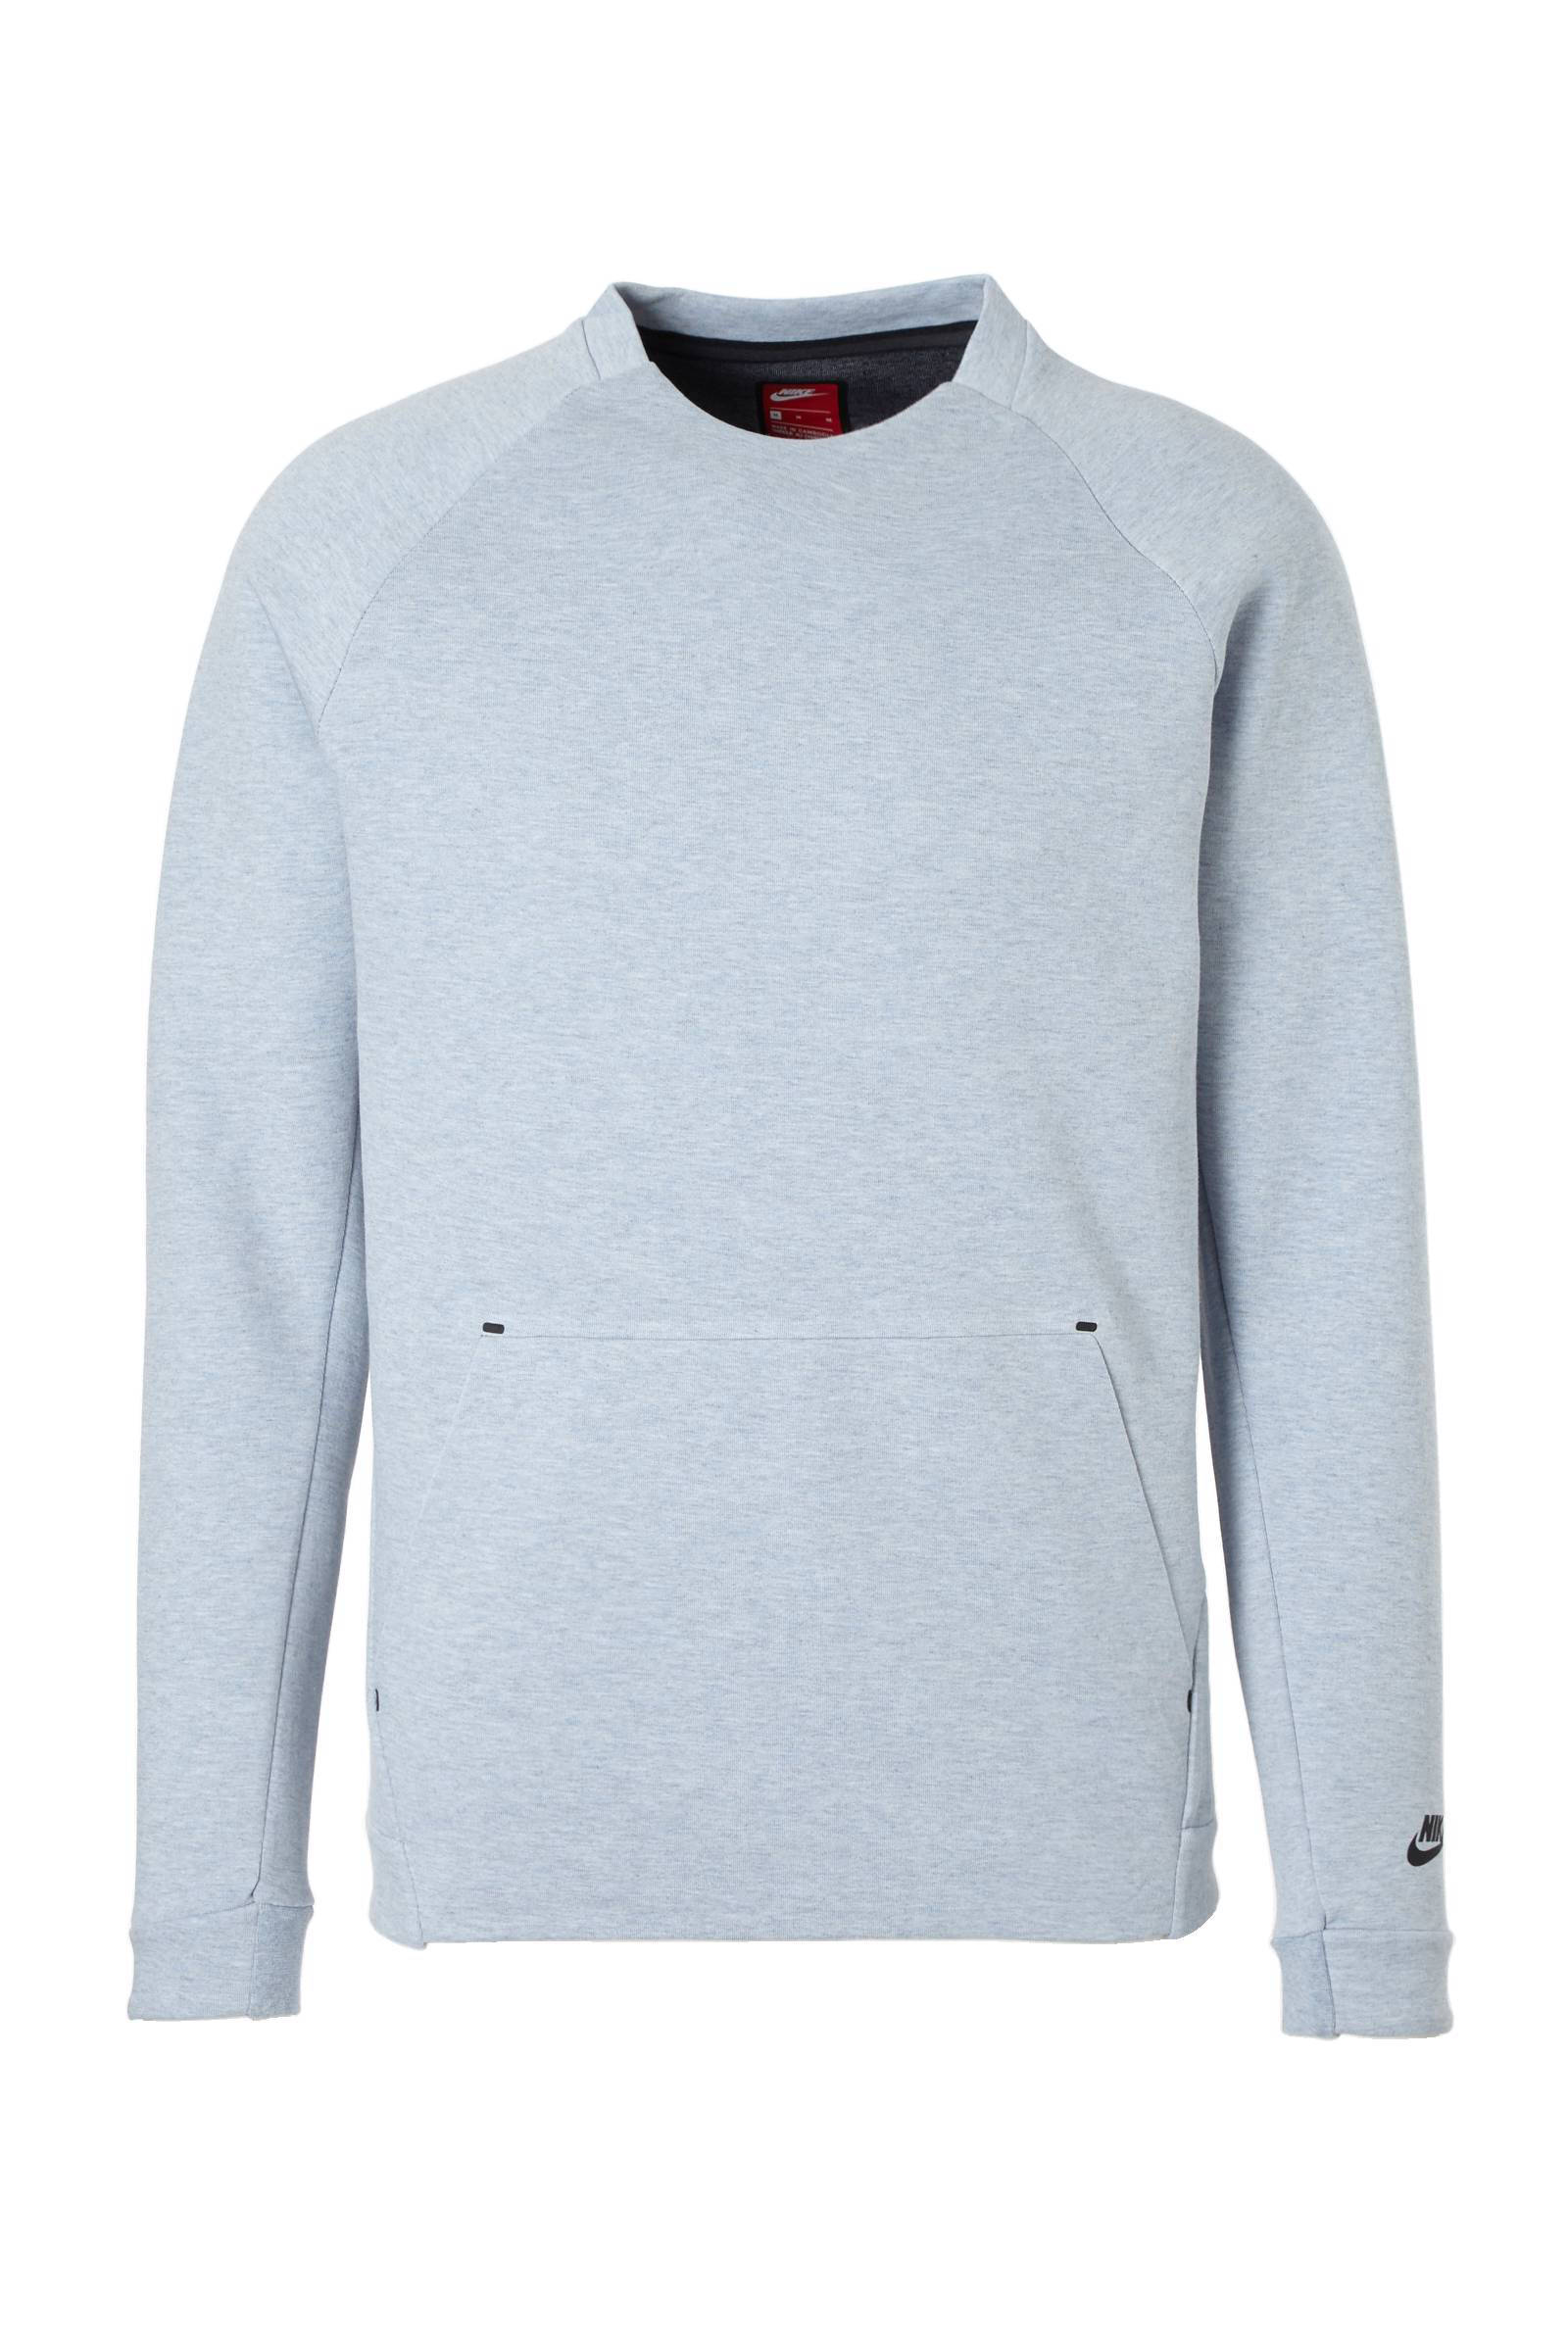 Tech Fleece sweater